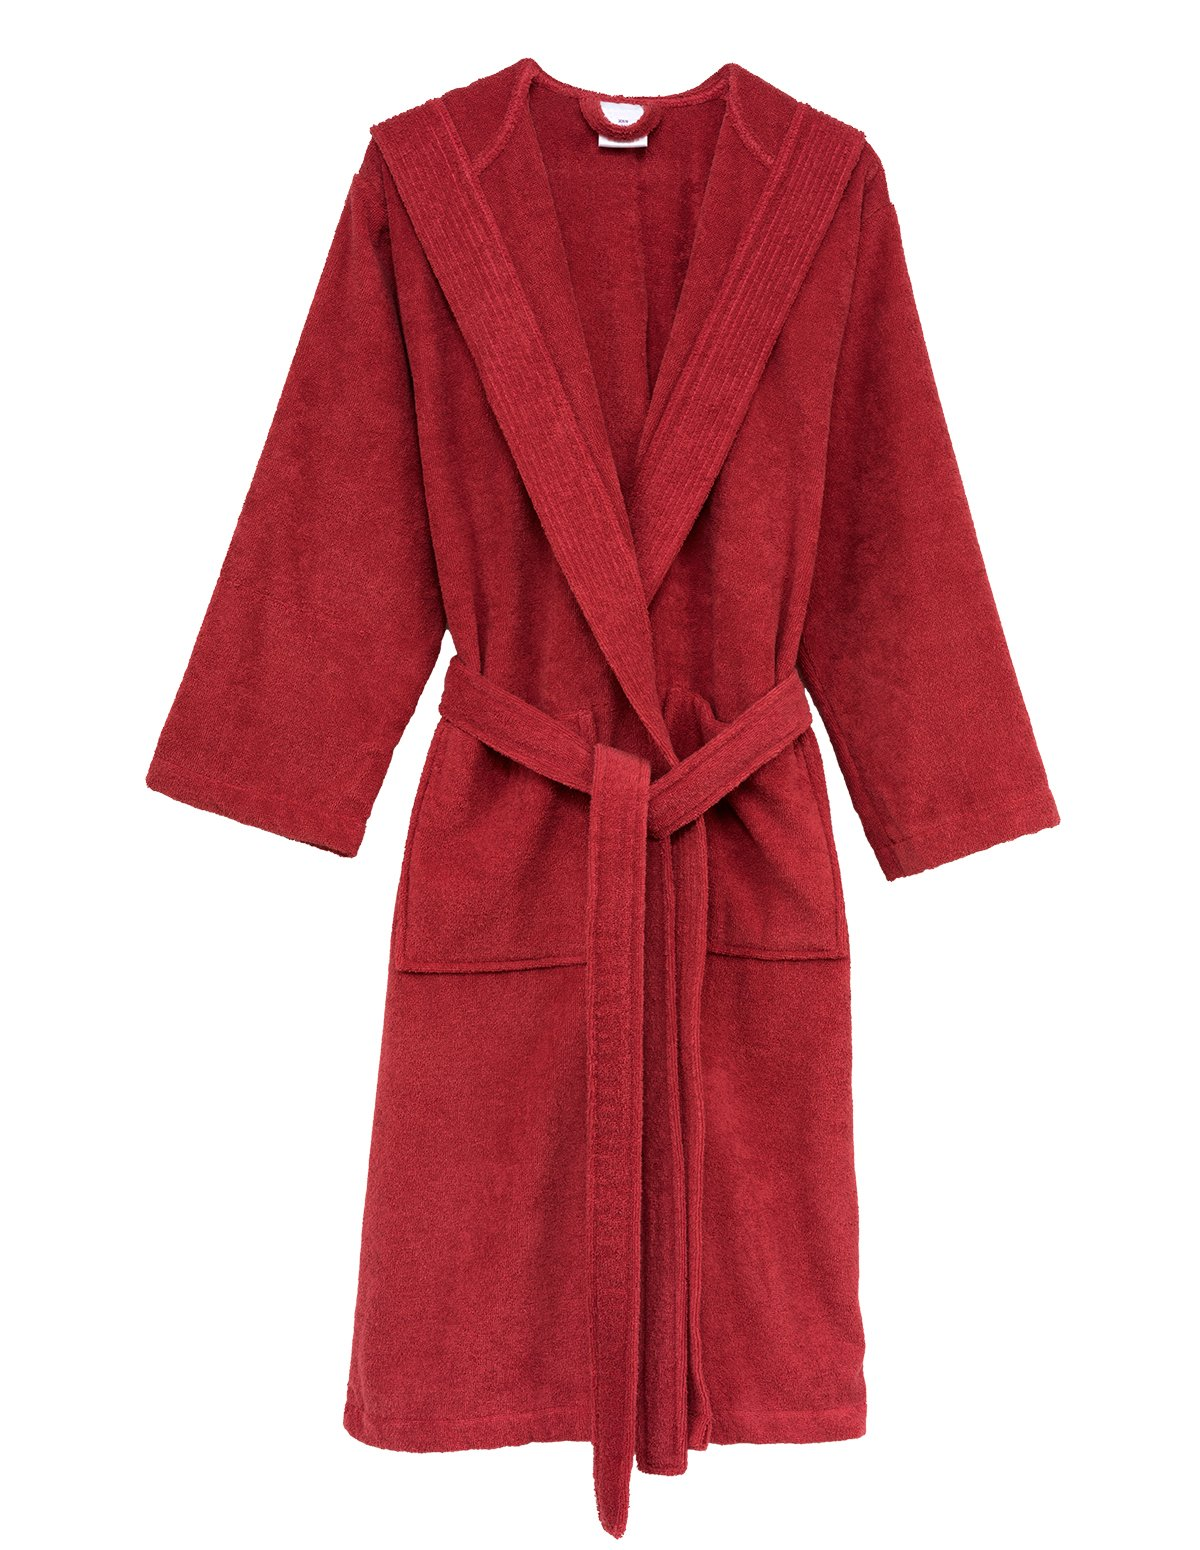 0d8578c945 Galleon - TowelSelections Women s Robe Turkish Cotton Hooded Terry Bathrobe  Medium Large Cranberry